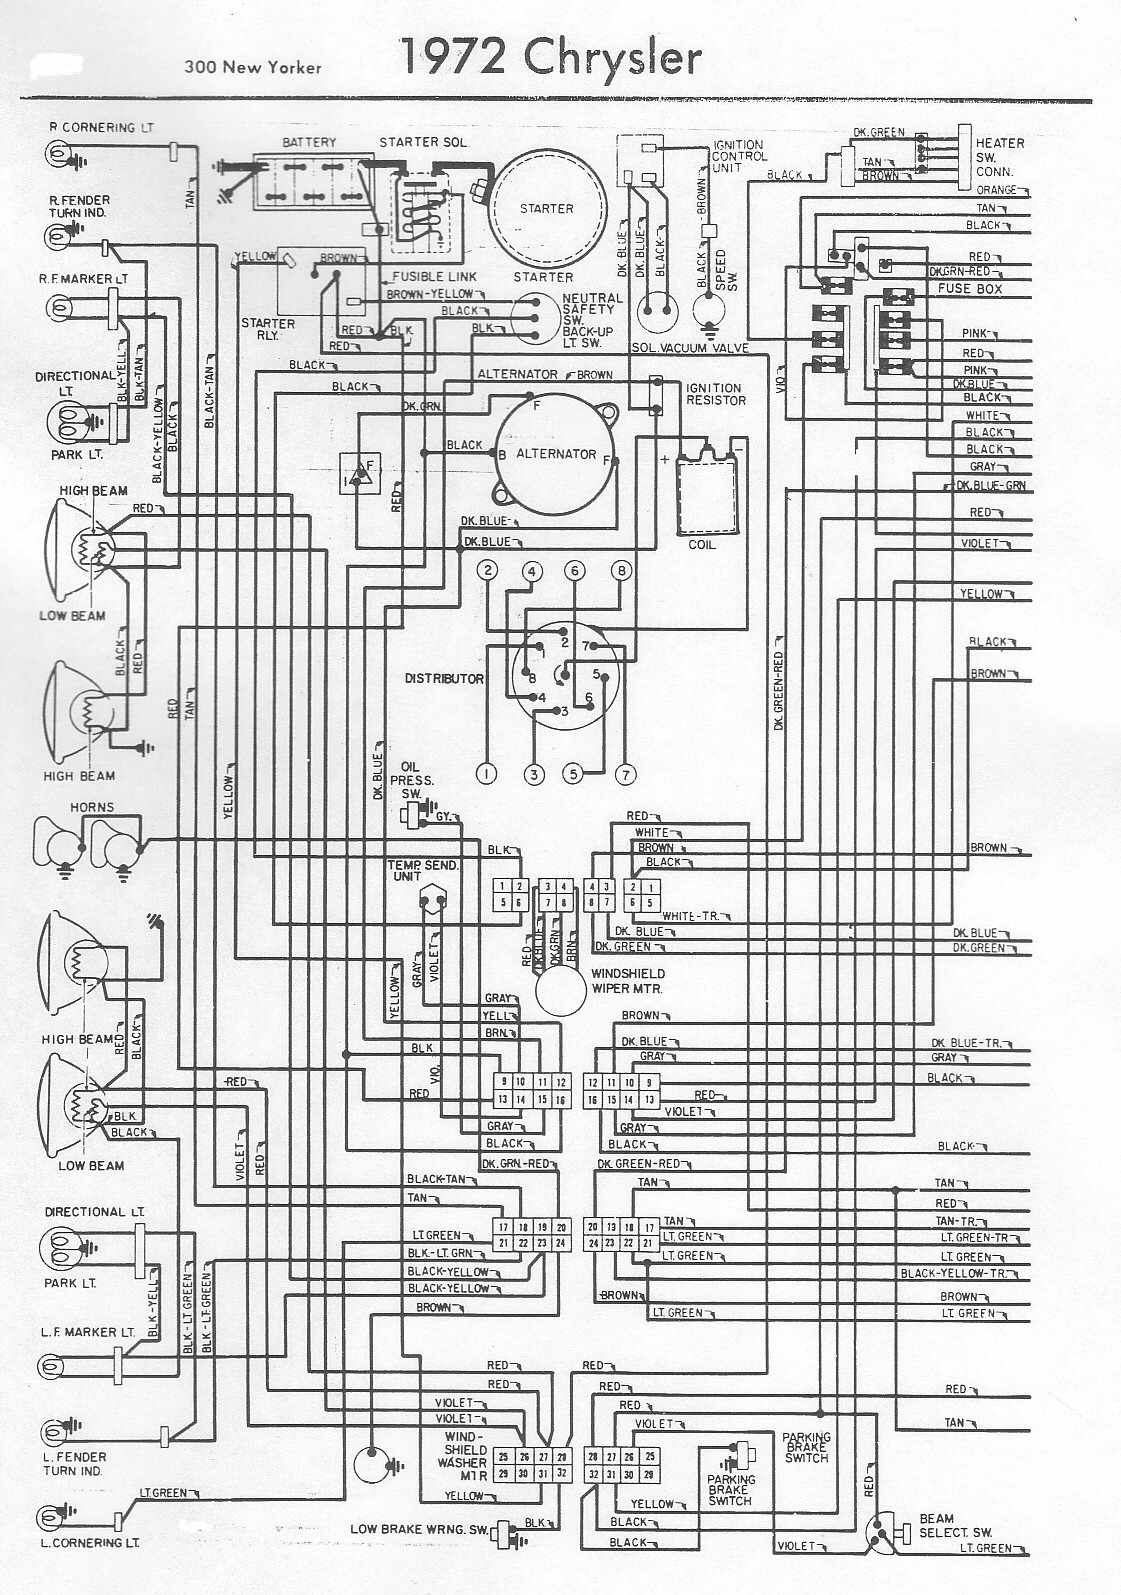 1951 imperial wiring diagram images gallery [ 1121 x 1595 Pixel ]